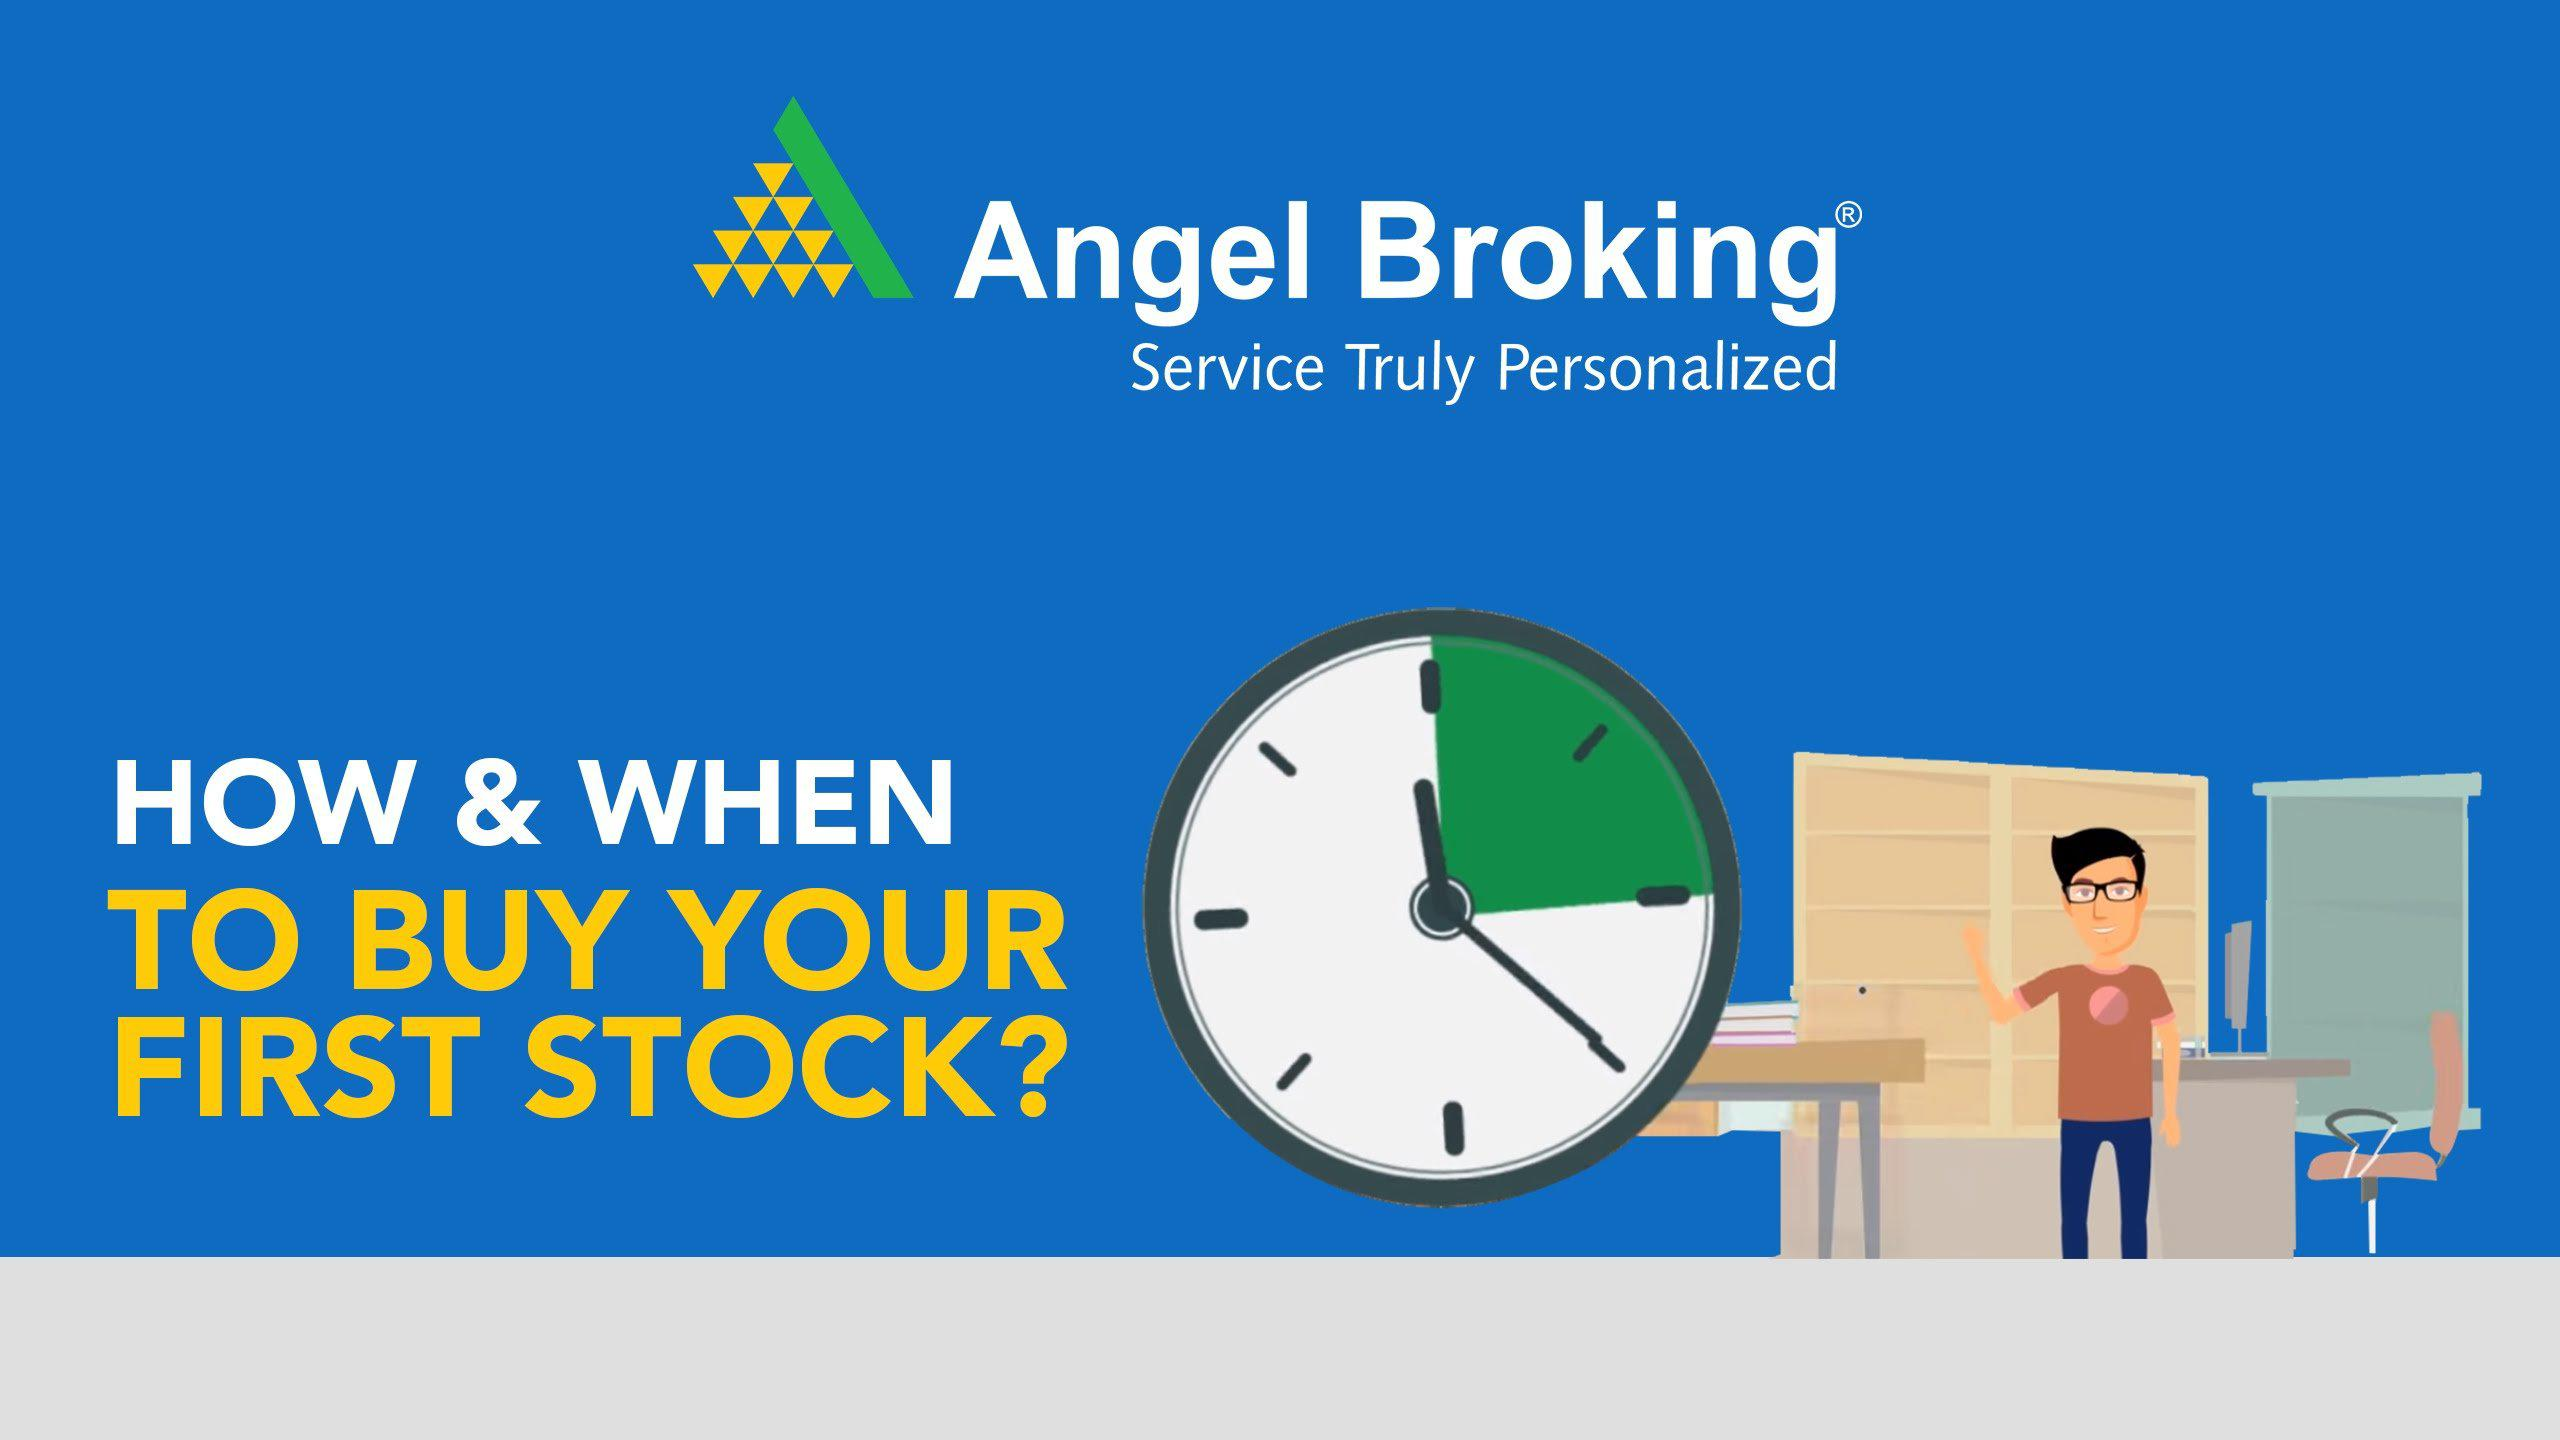 About Angel Broking Demat Account